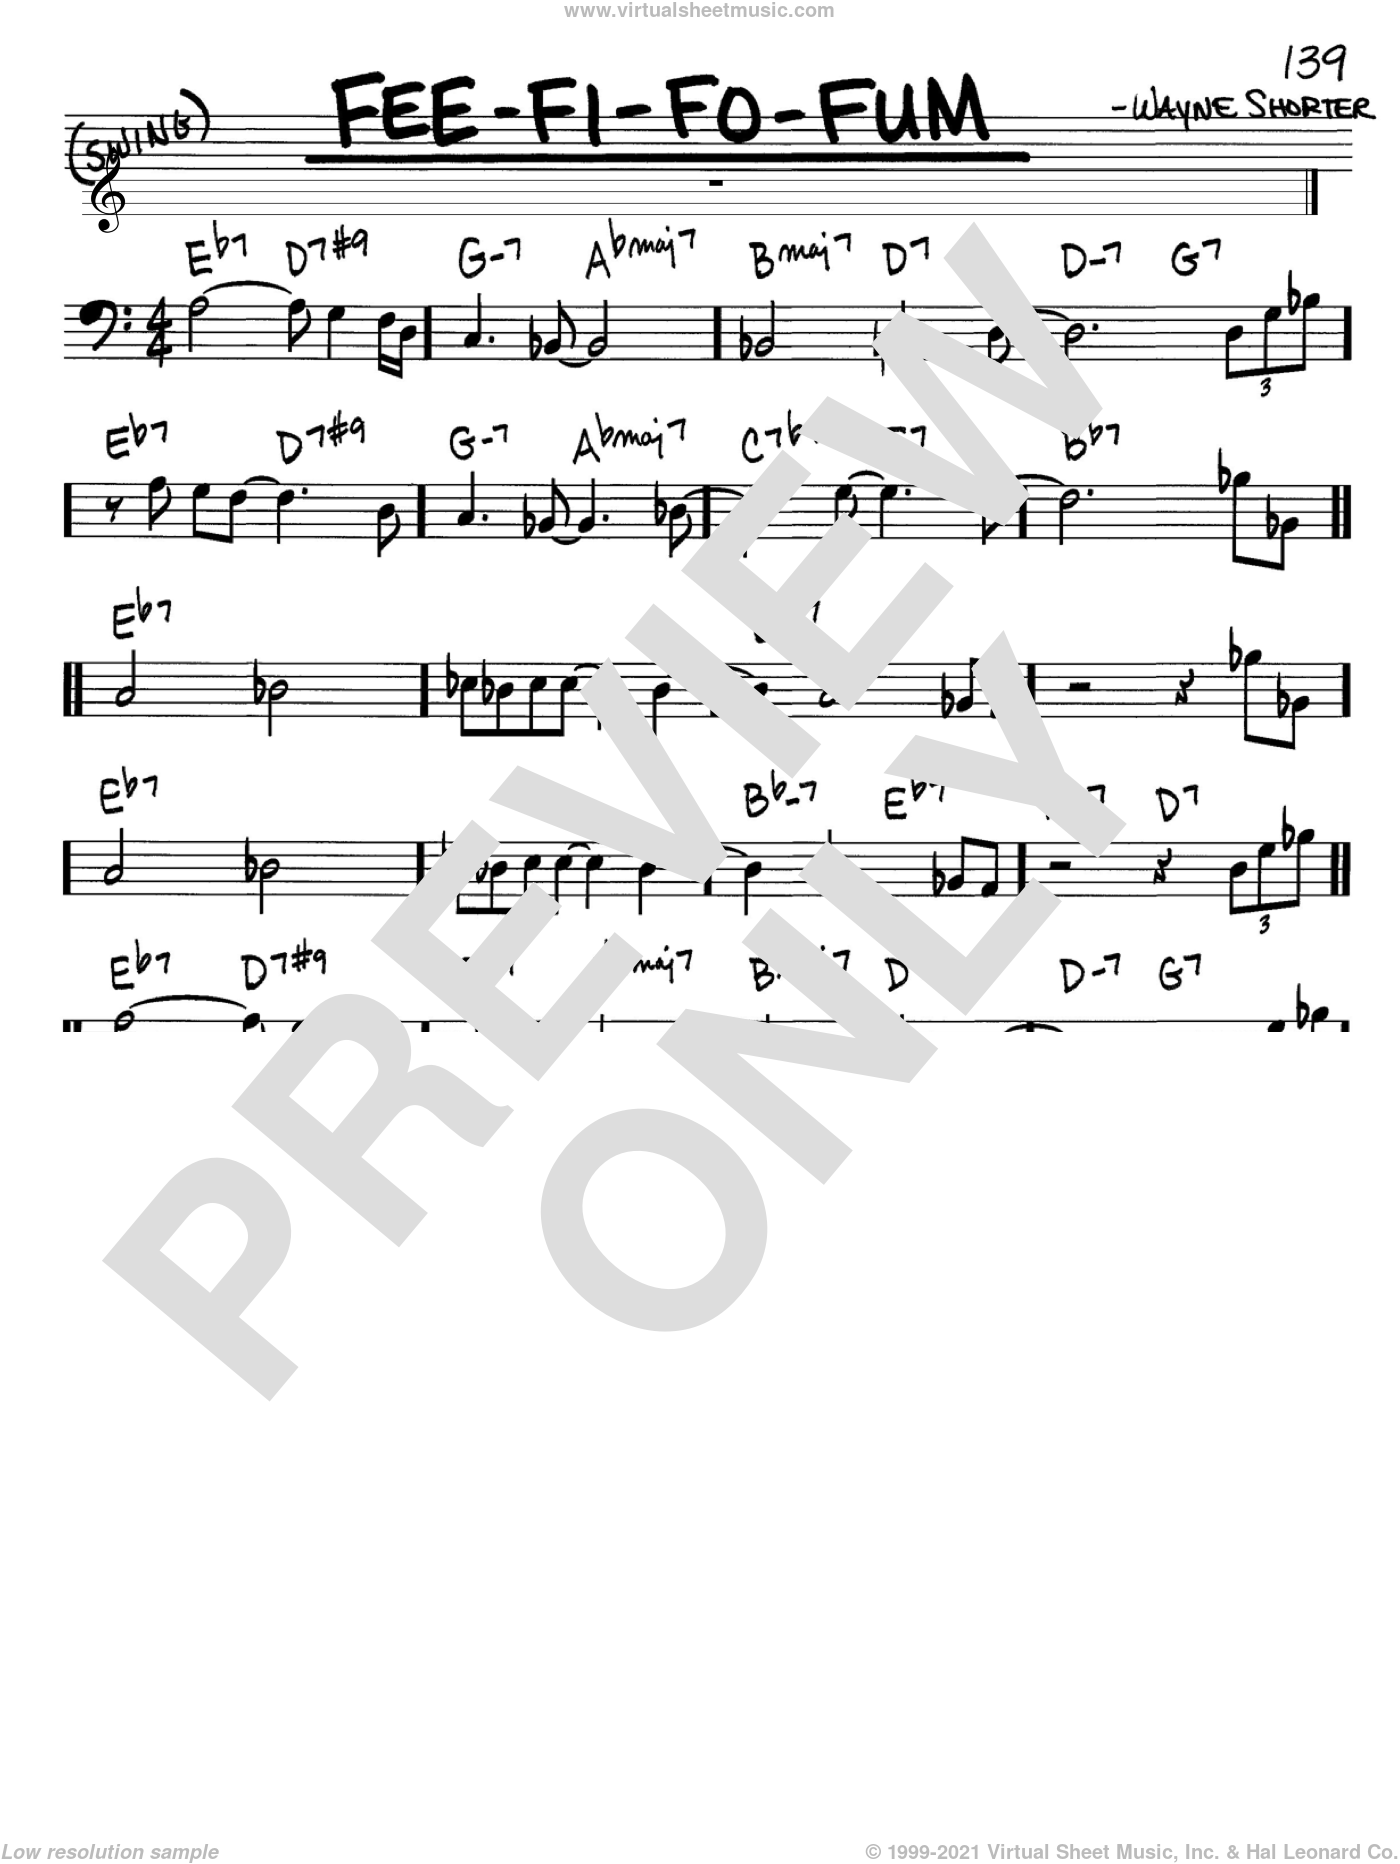 Fee-Fi-Fo-Fum sheet music for voice and other instruments (Bass Clef ) by Wayne Shorter. Score Image Preview.